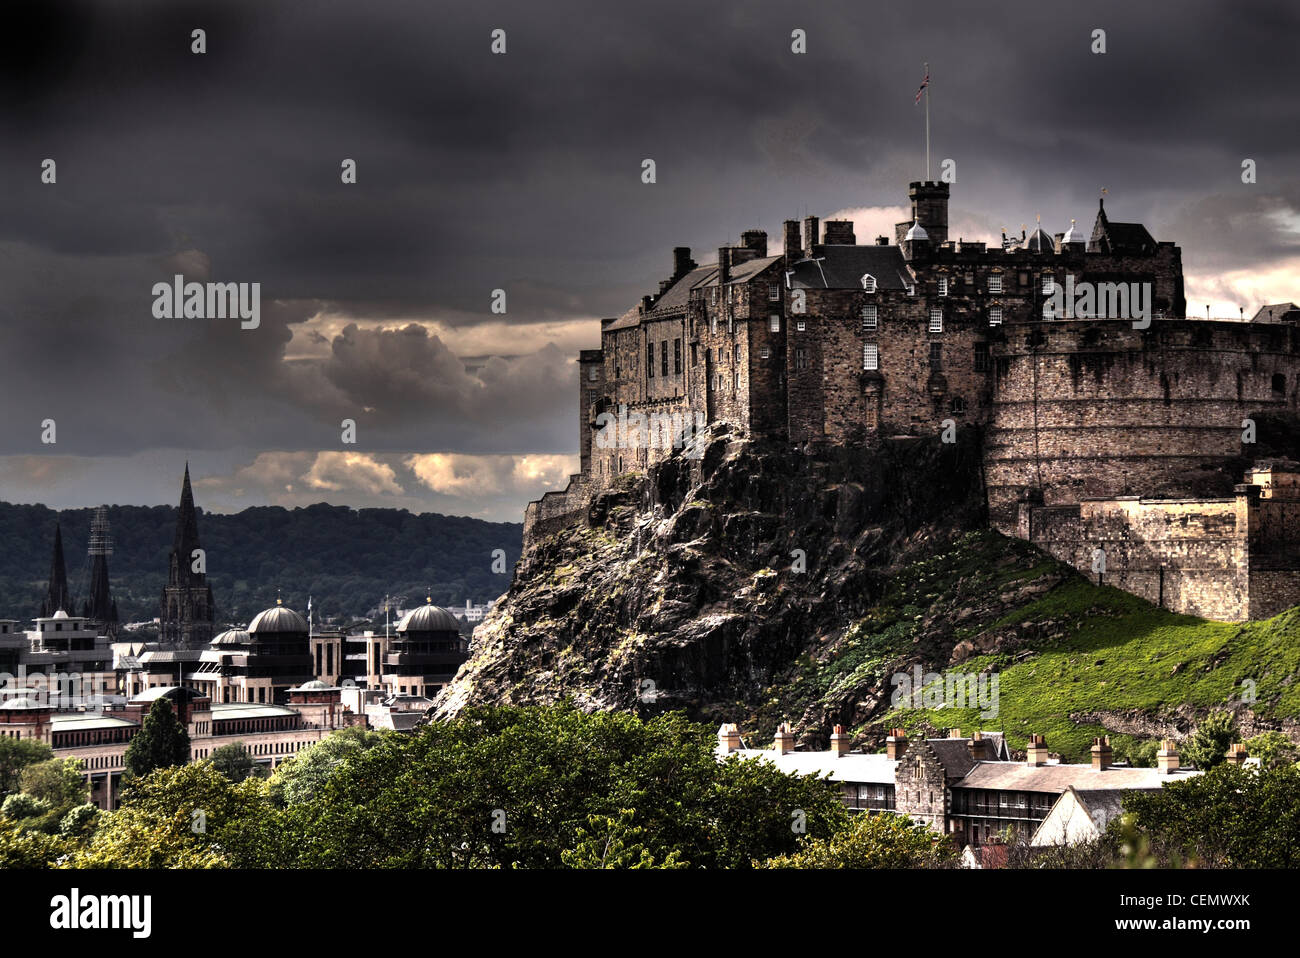 Edinburgh Castle from Science Museum roof,city,Scotland,capital,UK,view,pano,panorama,gotonysmith,drama,dramatic,sky,gray,grey,citybelow,scottish,independance,independence,home,rule,devolution,parliament,SNP,national,party,@Hotpixuk,Government,moody,future,election,world,capitals,class,GotonySmith,hilltop,historic,history,historical,icon,iconic,kingdom,landmark,landmarks,lowlands,lothian,medieval,monument,old,outcrop,rock,rocky,Royal,family,scotch,scotland,scots,scottish,sight,sights,scenic,sightseeing,skies,sky,skyline,summer,sun,sunny,sunshine,stronghold,tour,tattoo,tourism,tourists,town,towns,towering,uk,united,white,unesco world heritage,Unesco,old town,Edinburgh Castle,dramatic sky,moody,mody sky,dramatic sky,summer,blue,blue sky,lush,green,trees,vegetation,clouds,Edinburg,Castel,Scots,Scottish,scotland,nationalistic,stone,tour,travel,tourist,attraction,Tour,tourist,tourism,tourist,attraction,Scotland,Capital,City,Scots,Scottish,icon,iconic,@Hotpixuk,HotpixUk,Royal Family,buy pictures of Edinburgh,Buy Pictures of,Buy Images Of,Edinburgh Castle,Tourist Attraction,city Centre